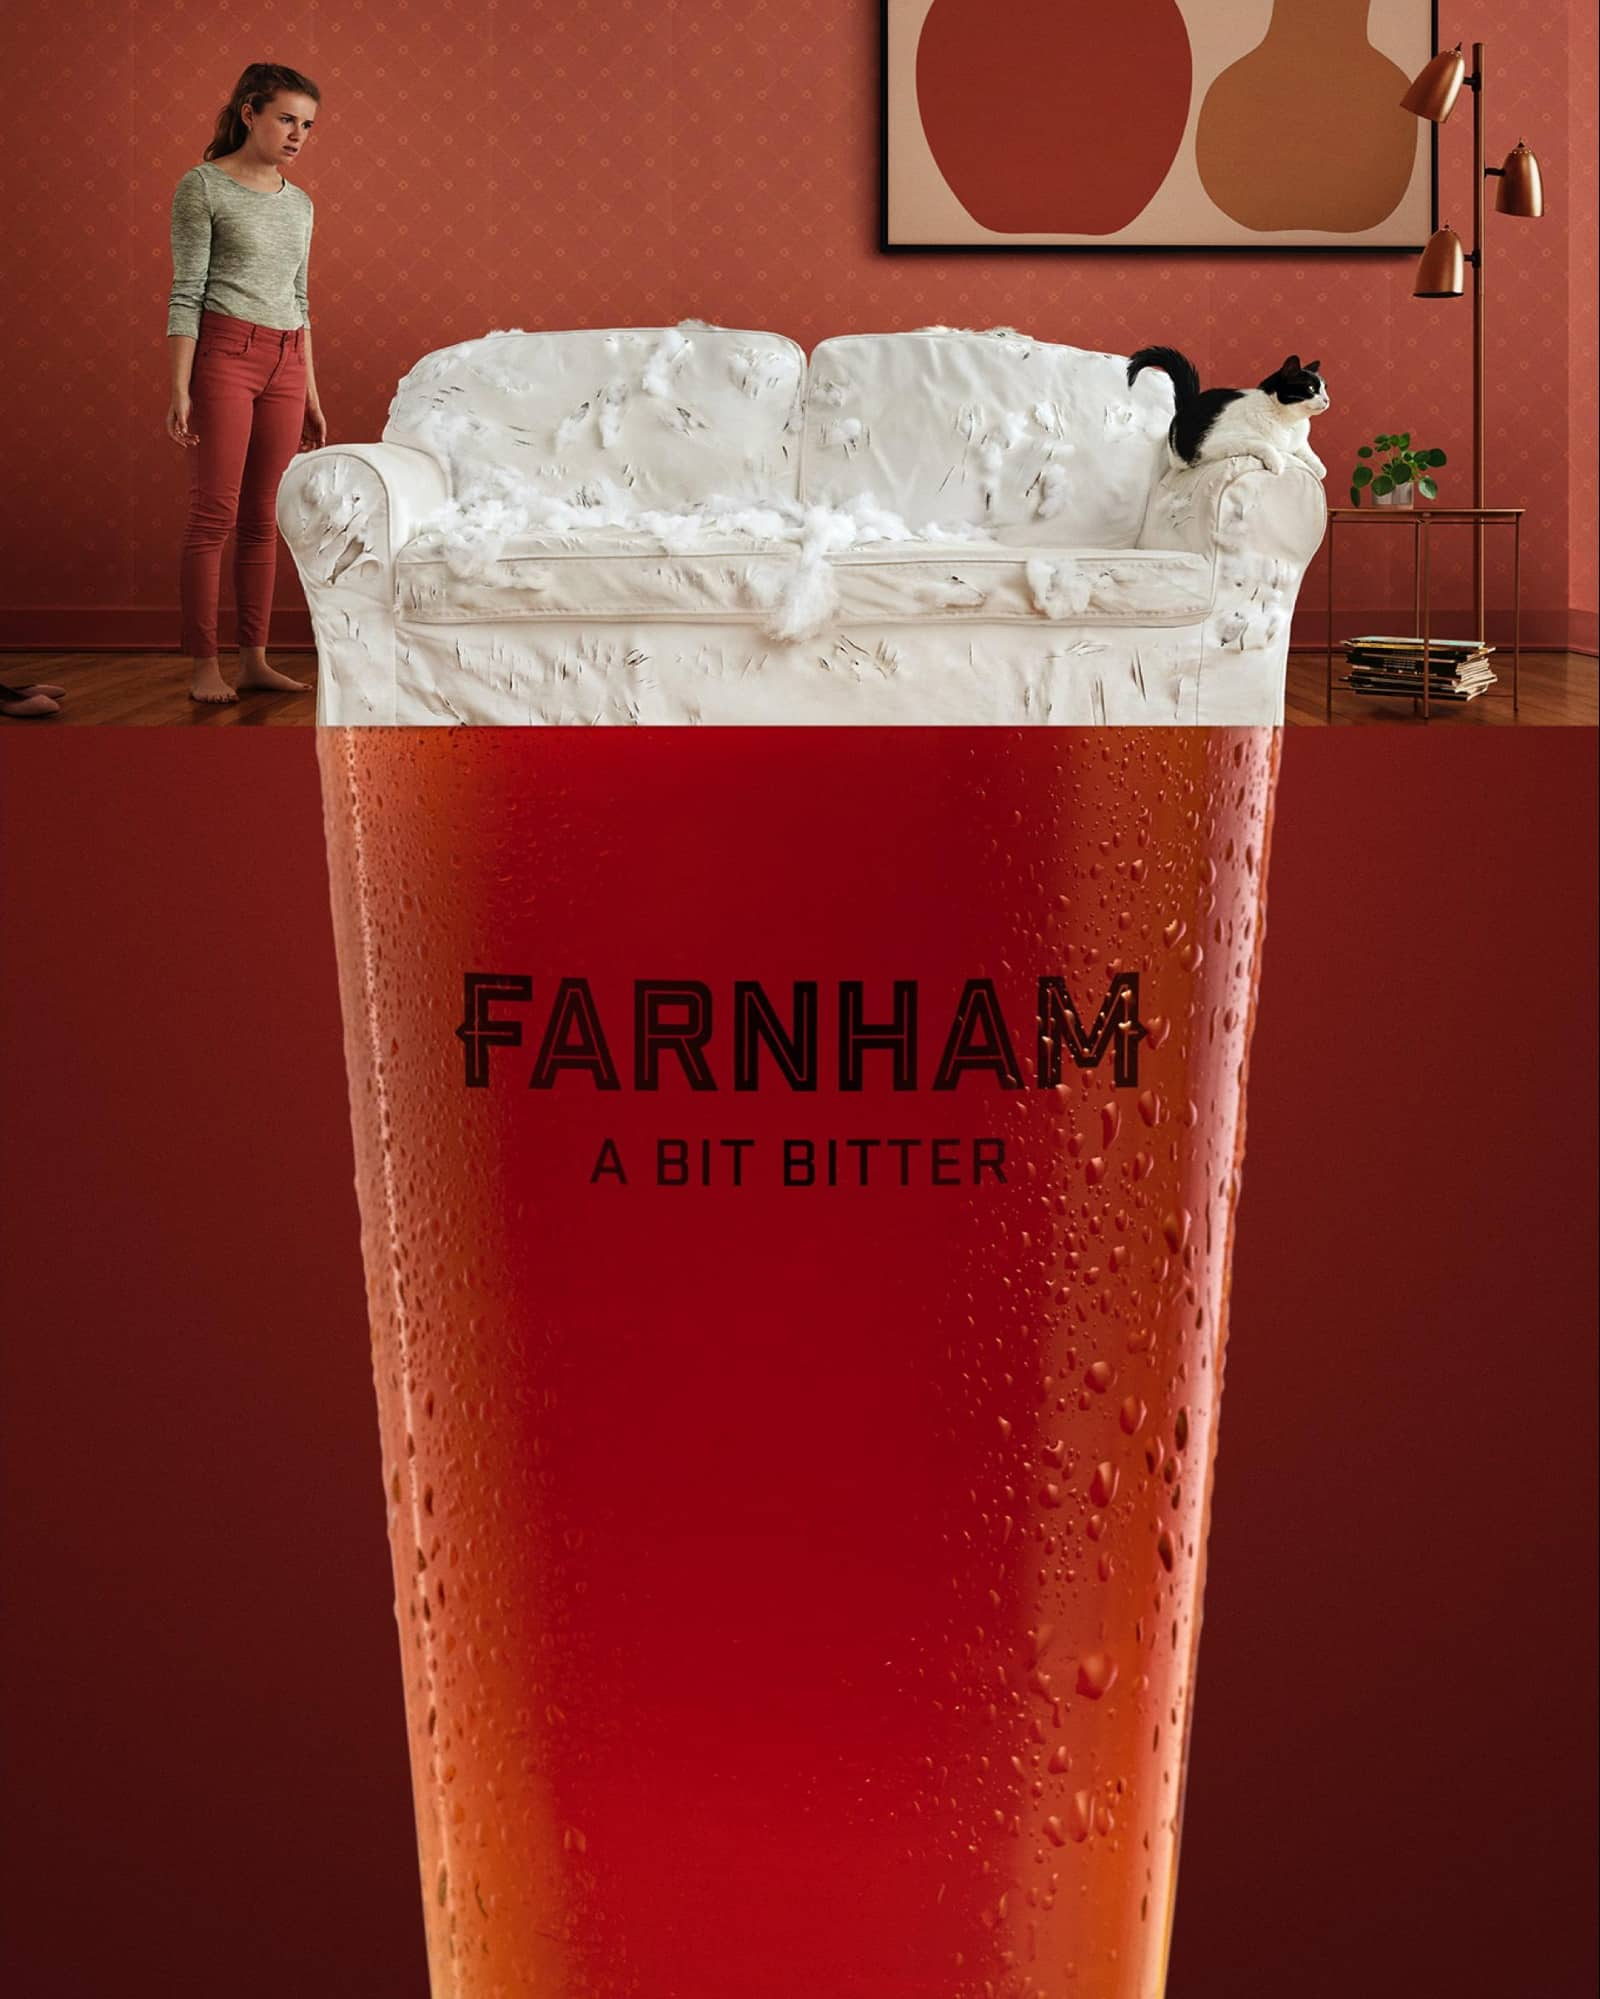 print farnham advertisement example